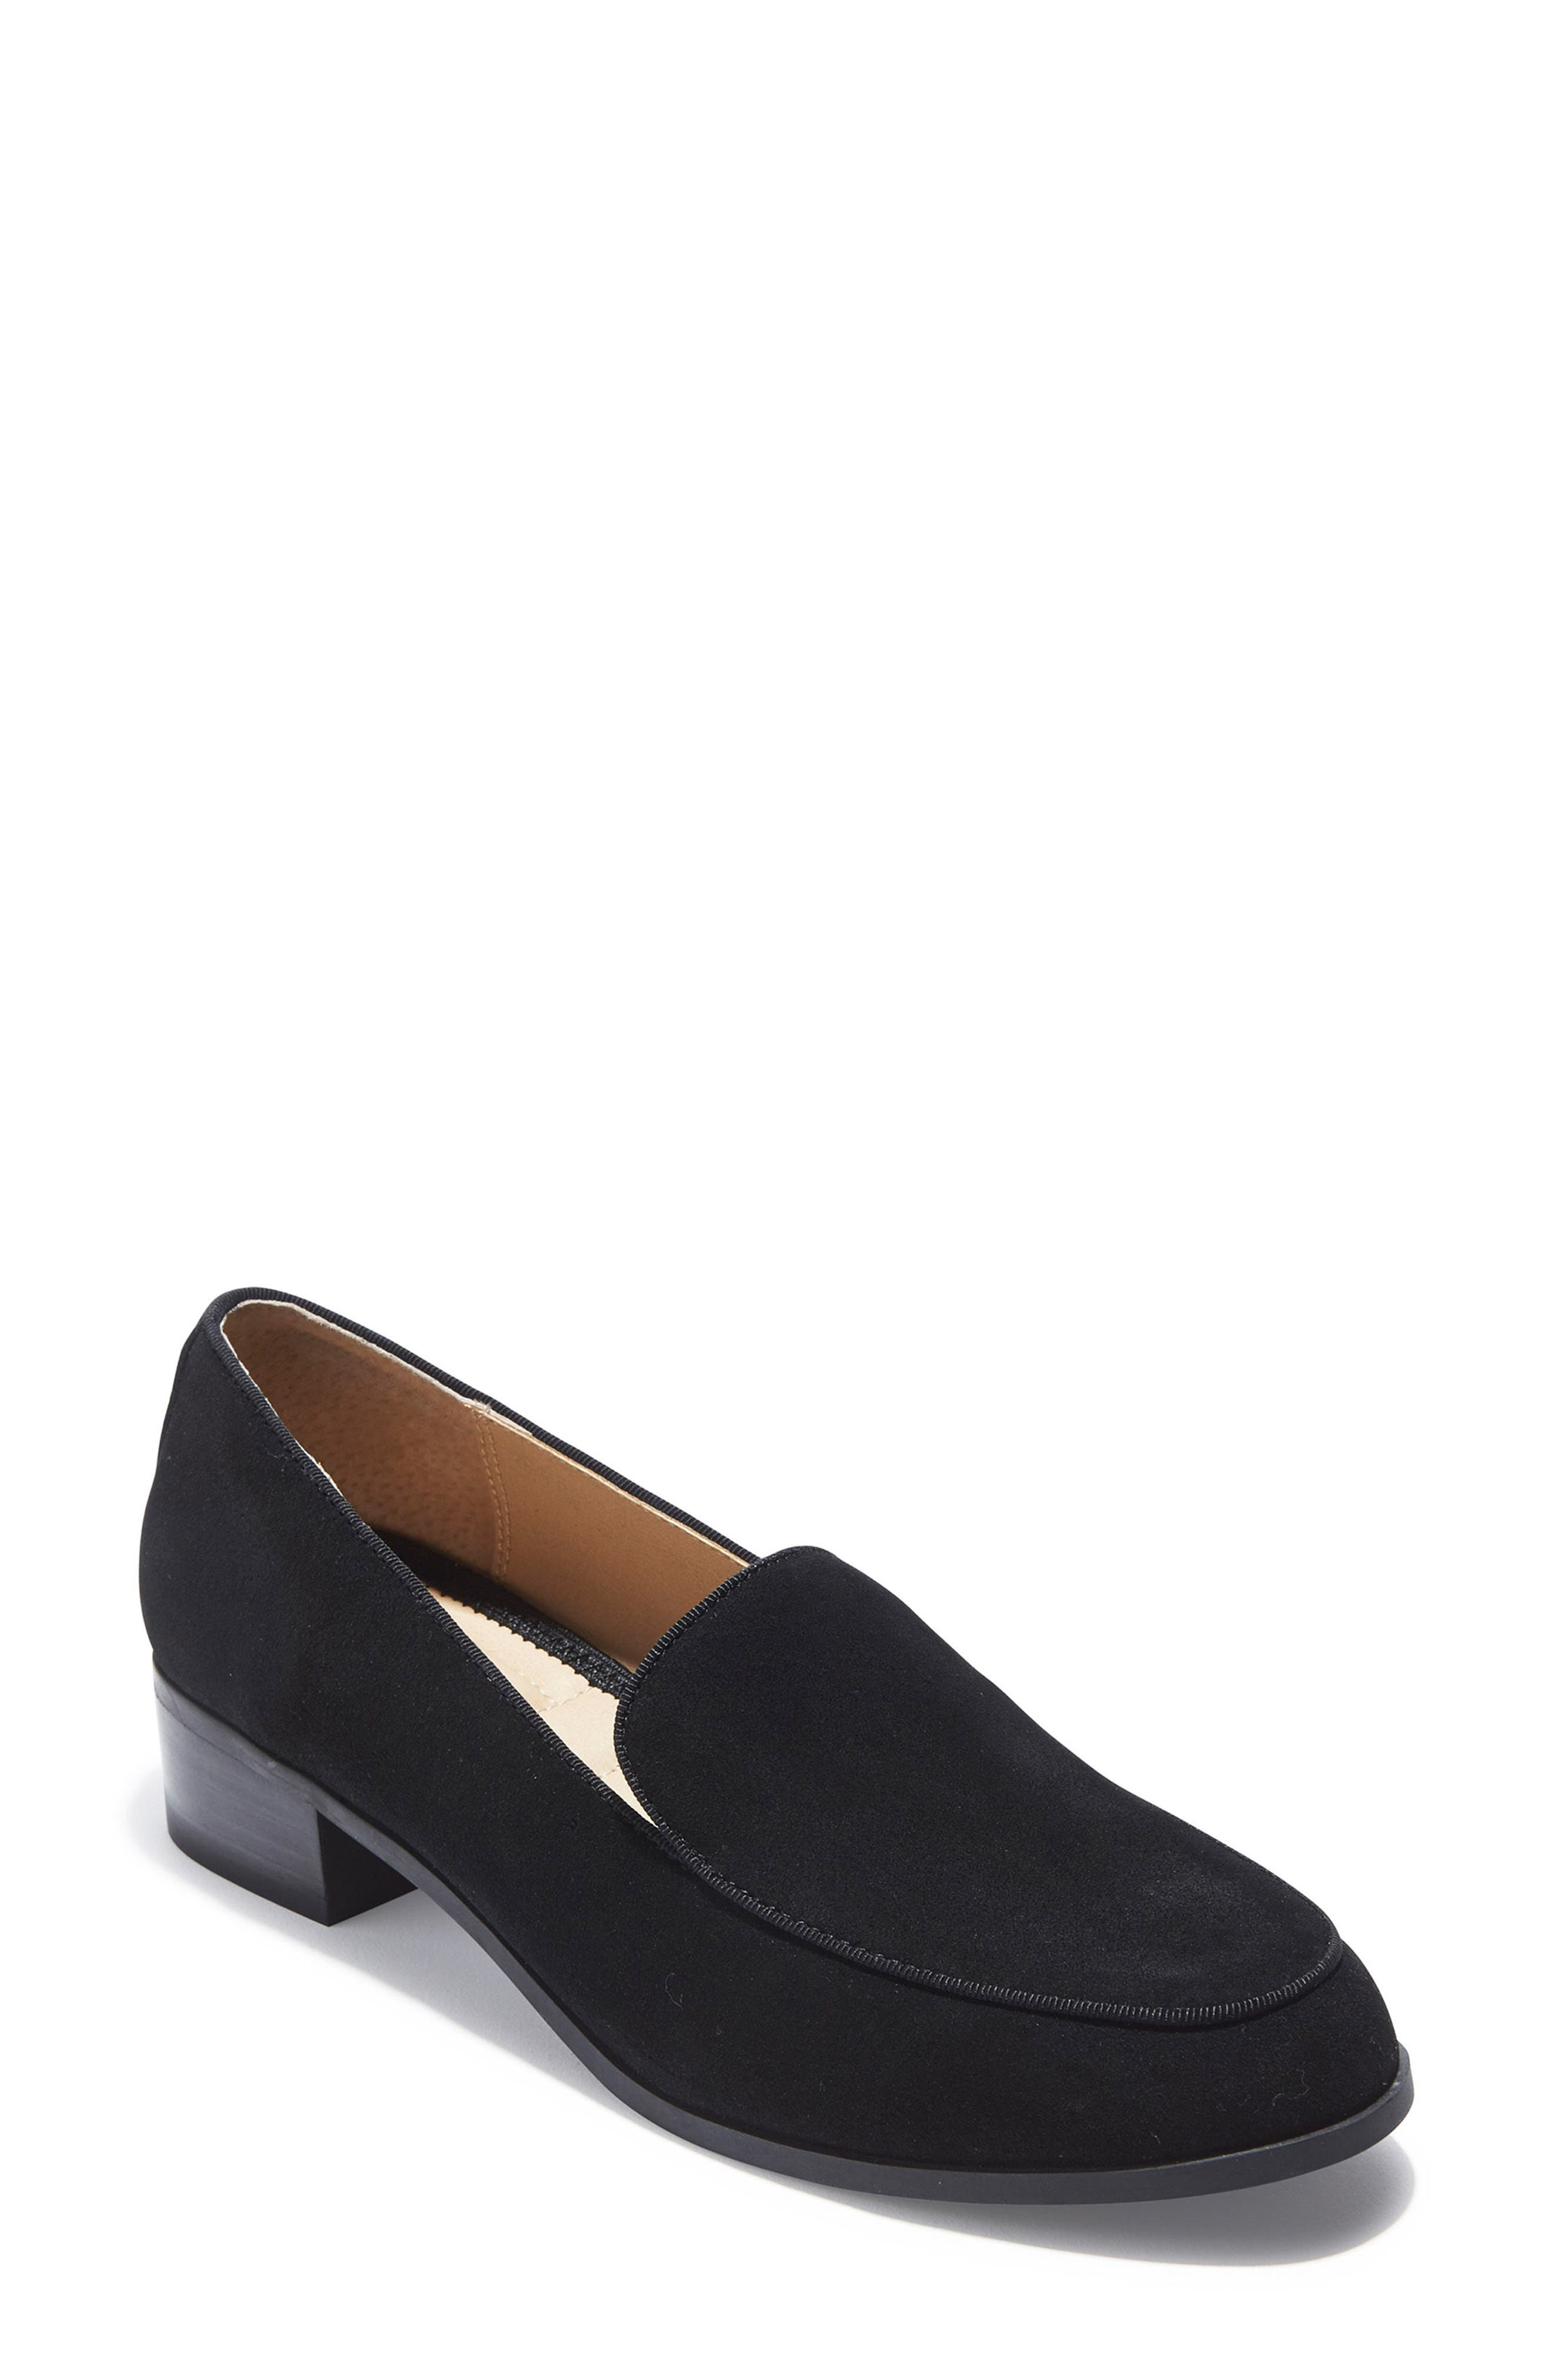 Jazzy Loafer,                         Main,                         color, Black Suede